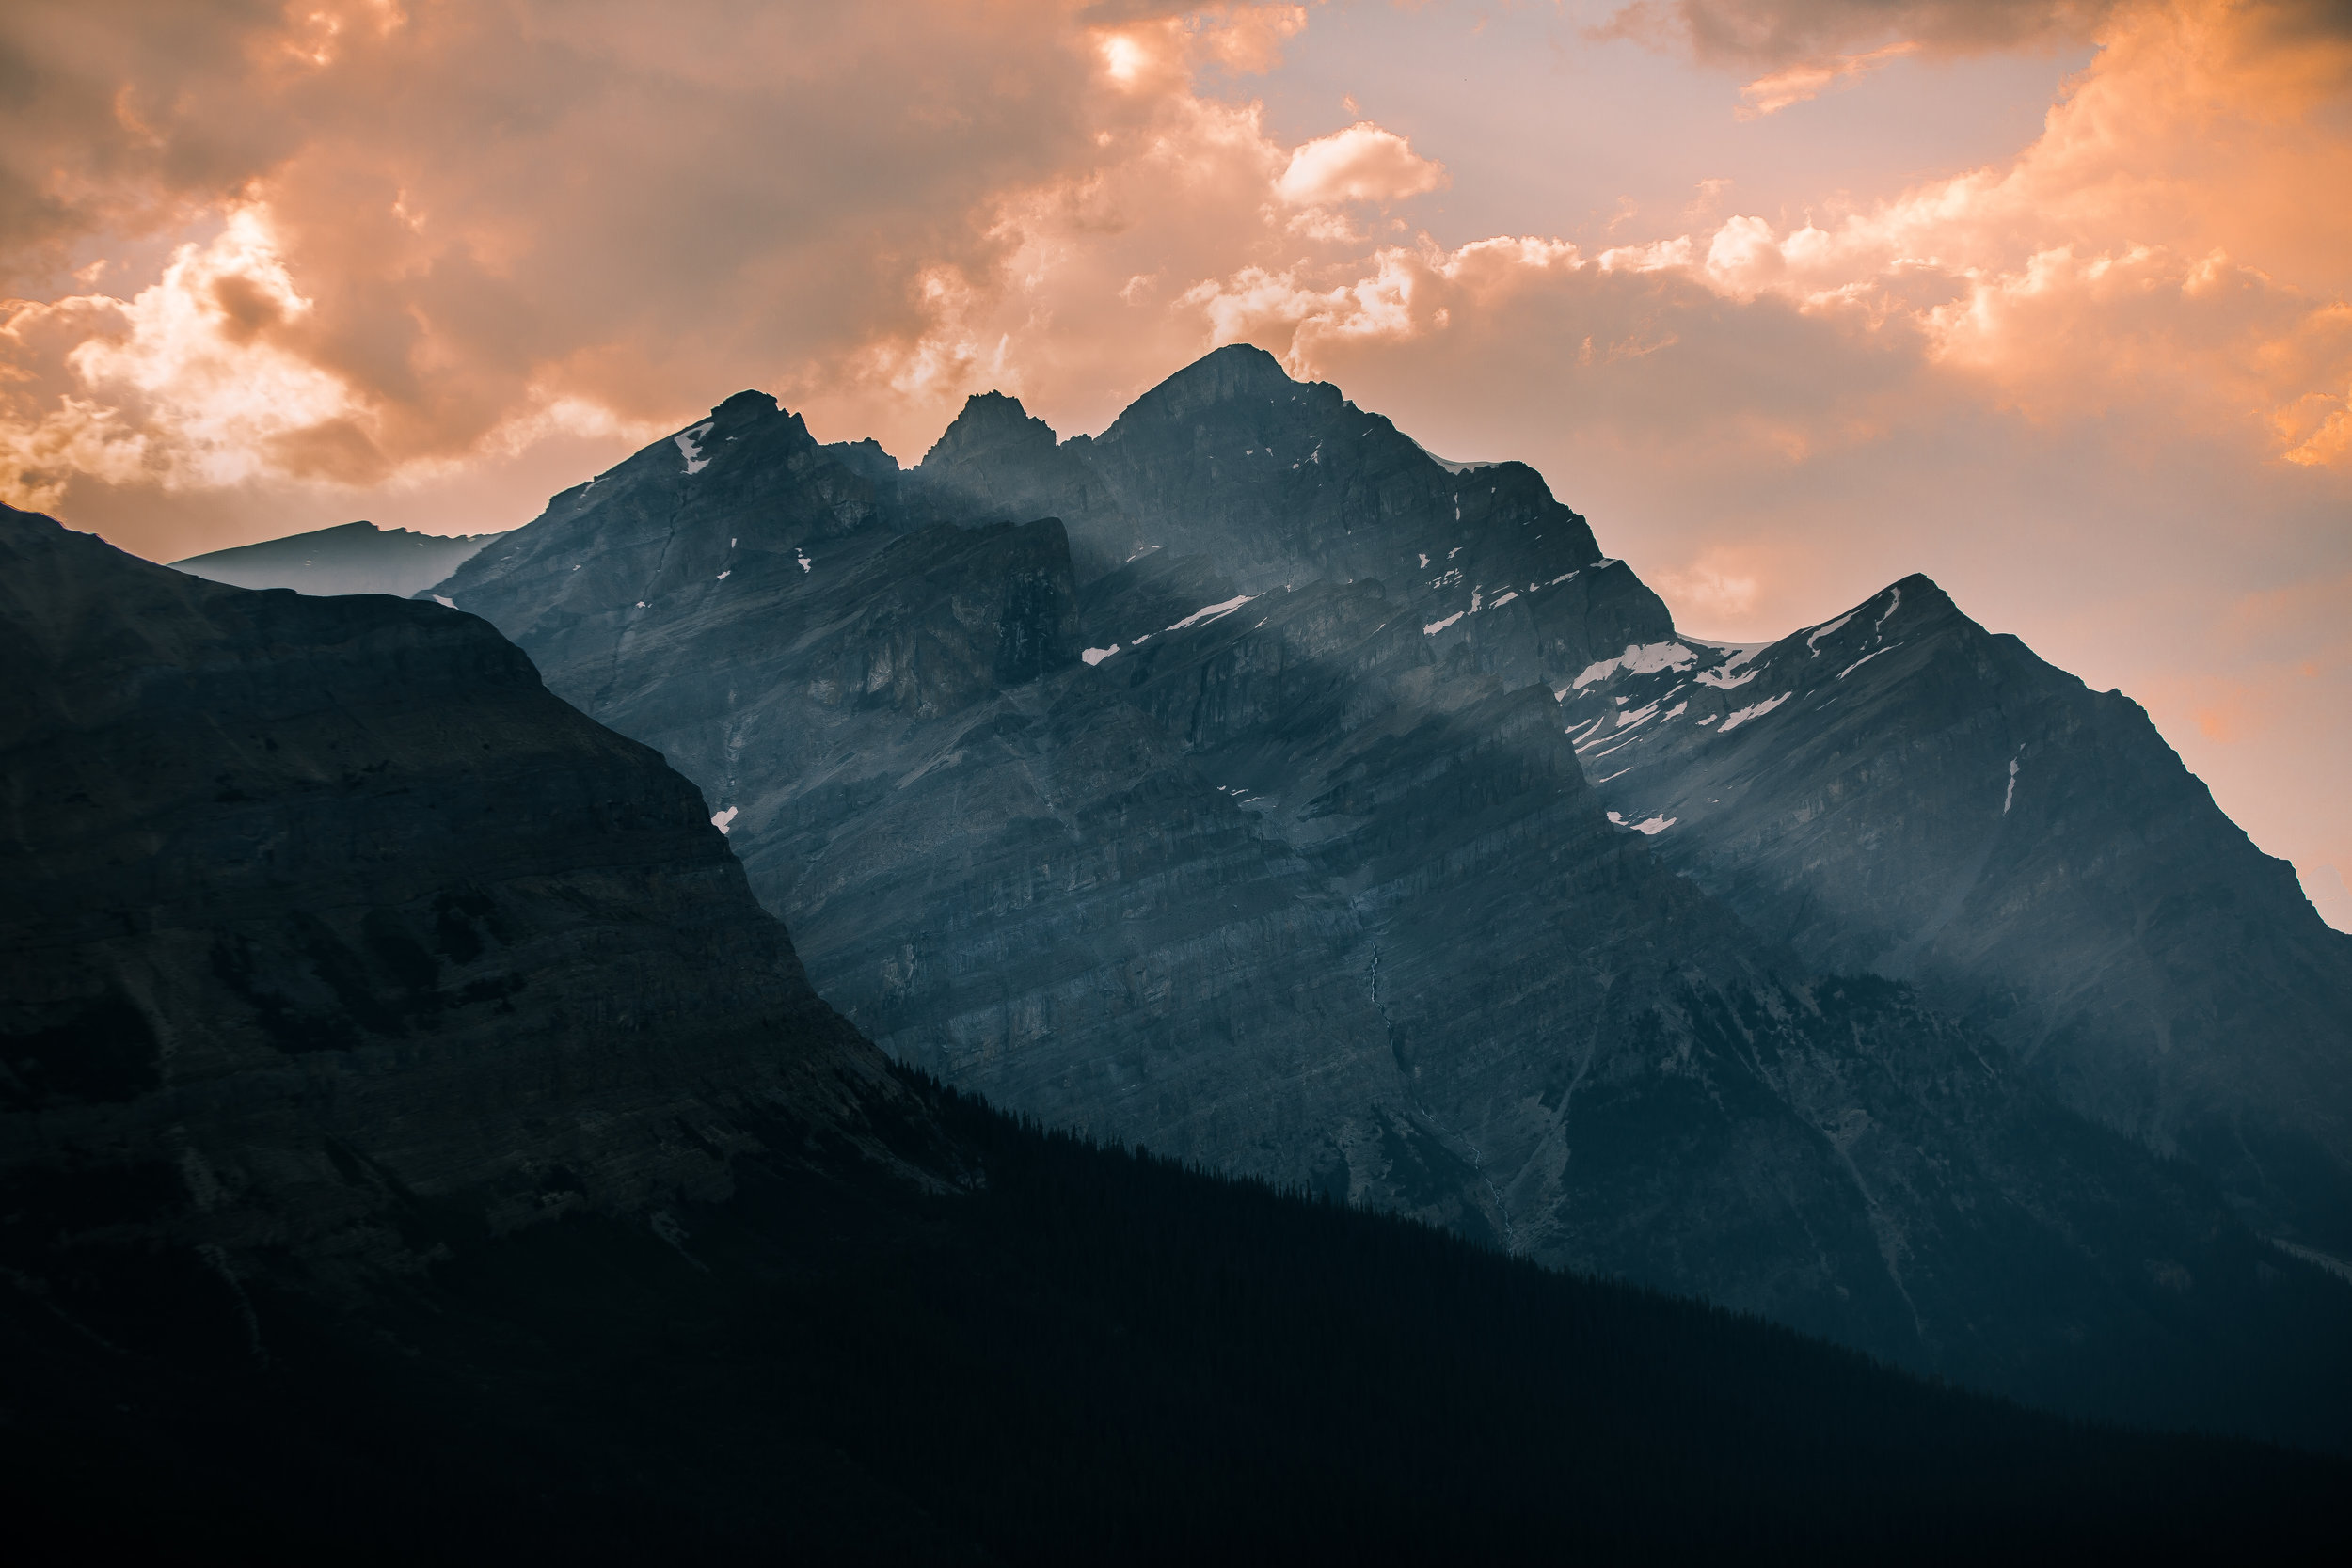 nicole-daacke-photography-banff-national-park-yoho-jasper-canada-parks-alberta-landscape-photographer-canadian-rockies-elopement-photographer-kananaskis-landscape-photos-5033.jpg